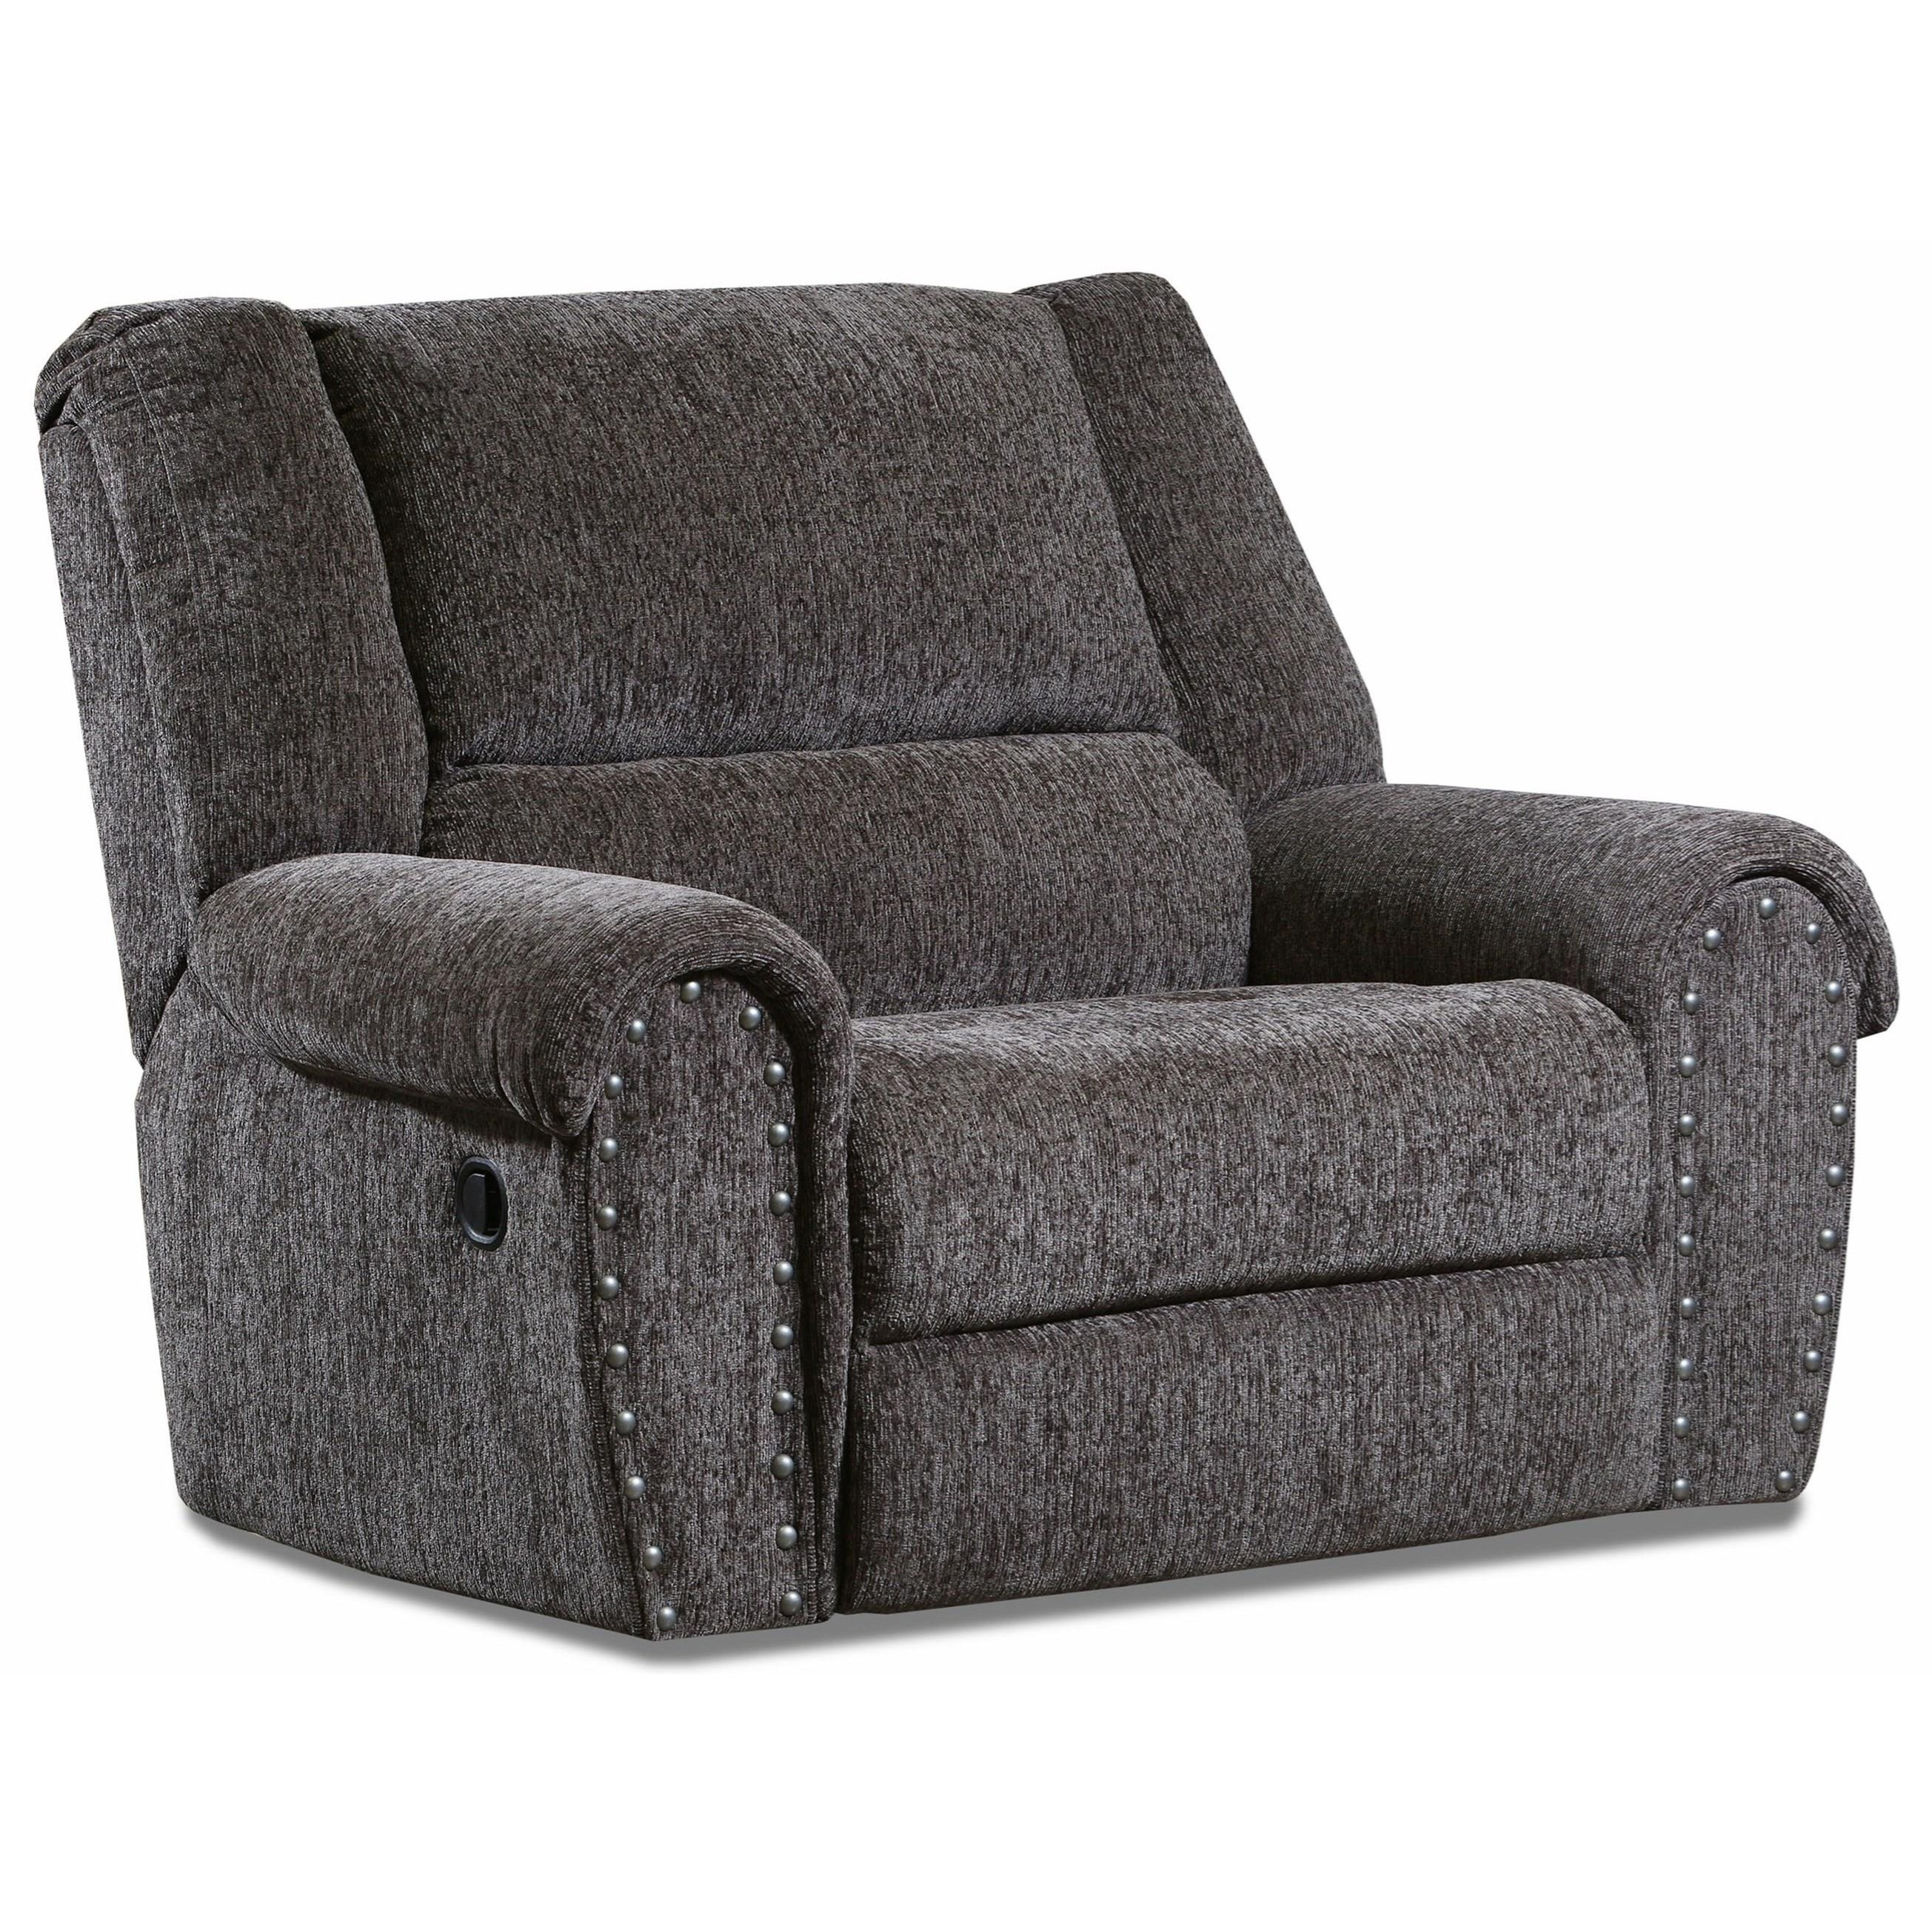 8859 Recliner by Peak Living at Prime Brothers Furniture